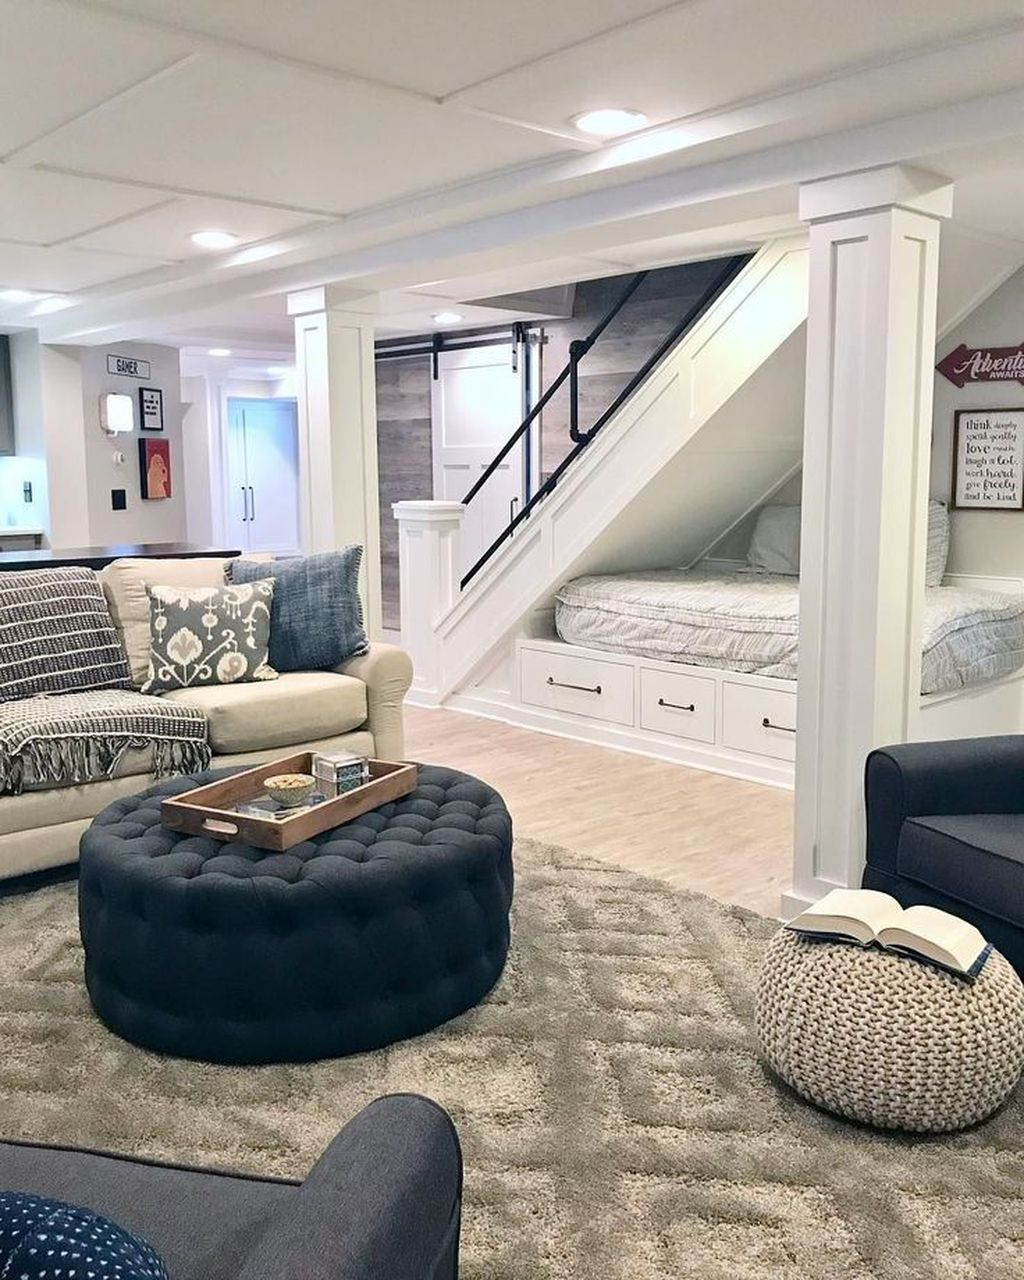 Stunning Basement Remodel Ideas Be A Beautiful Living Space 31